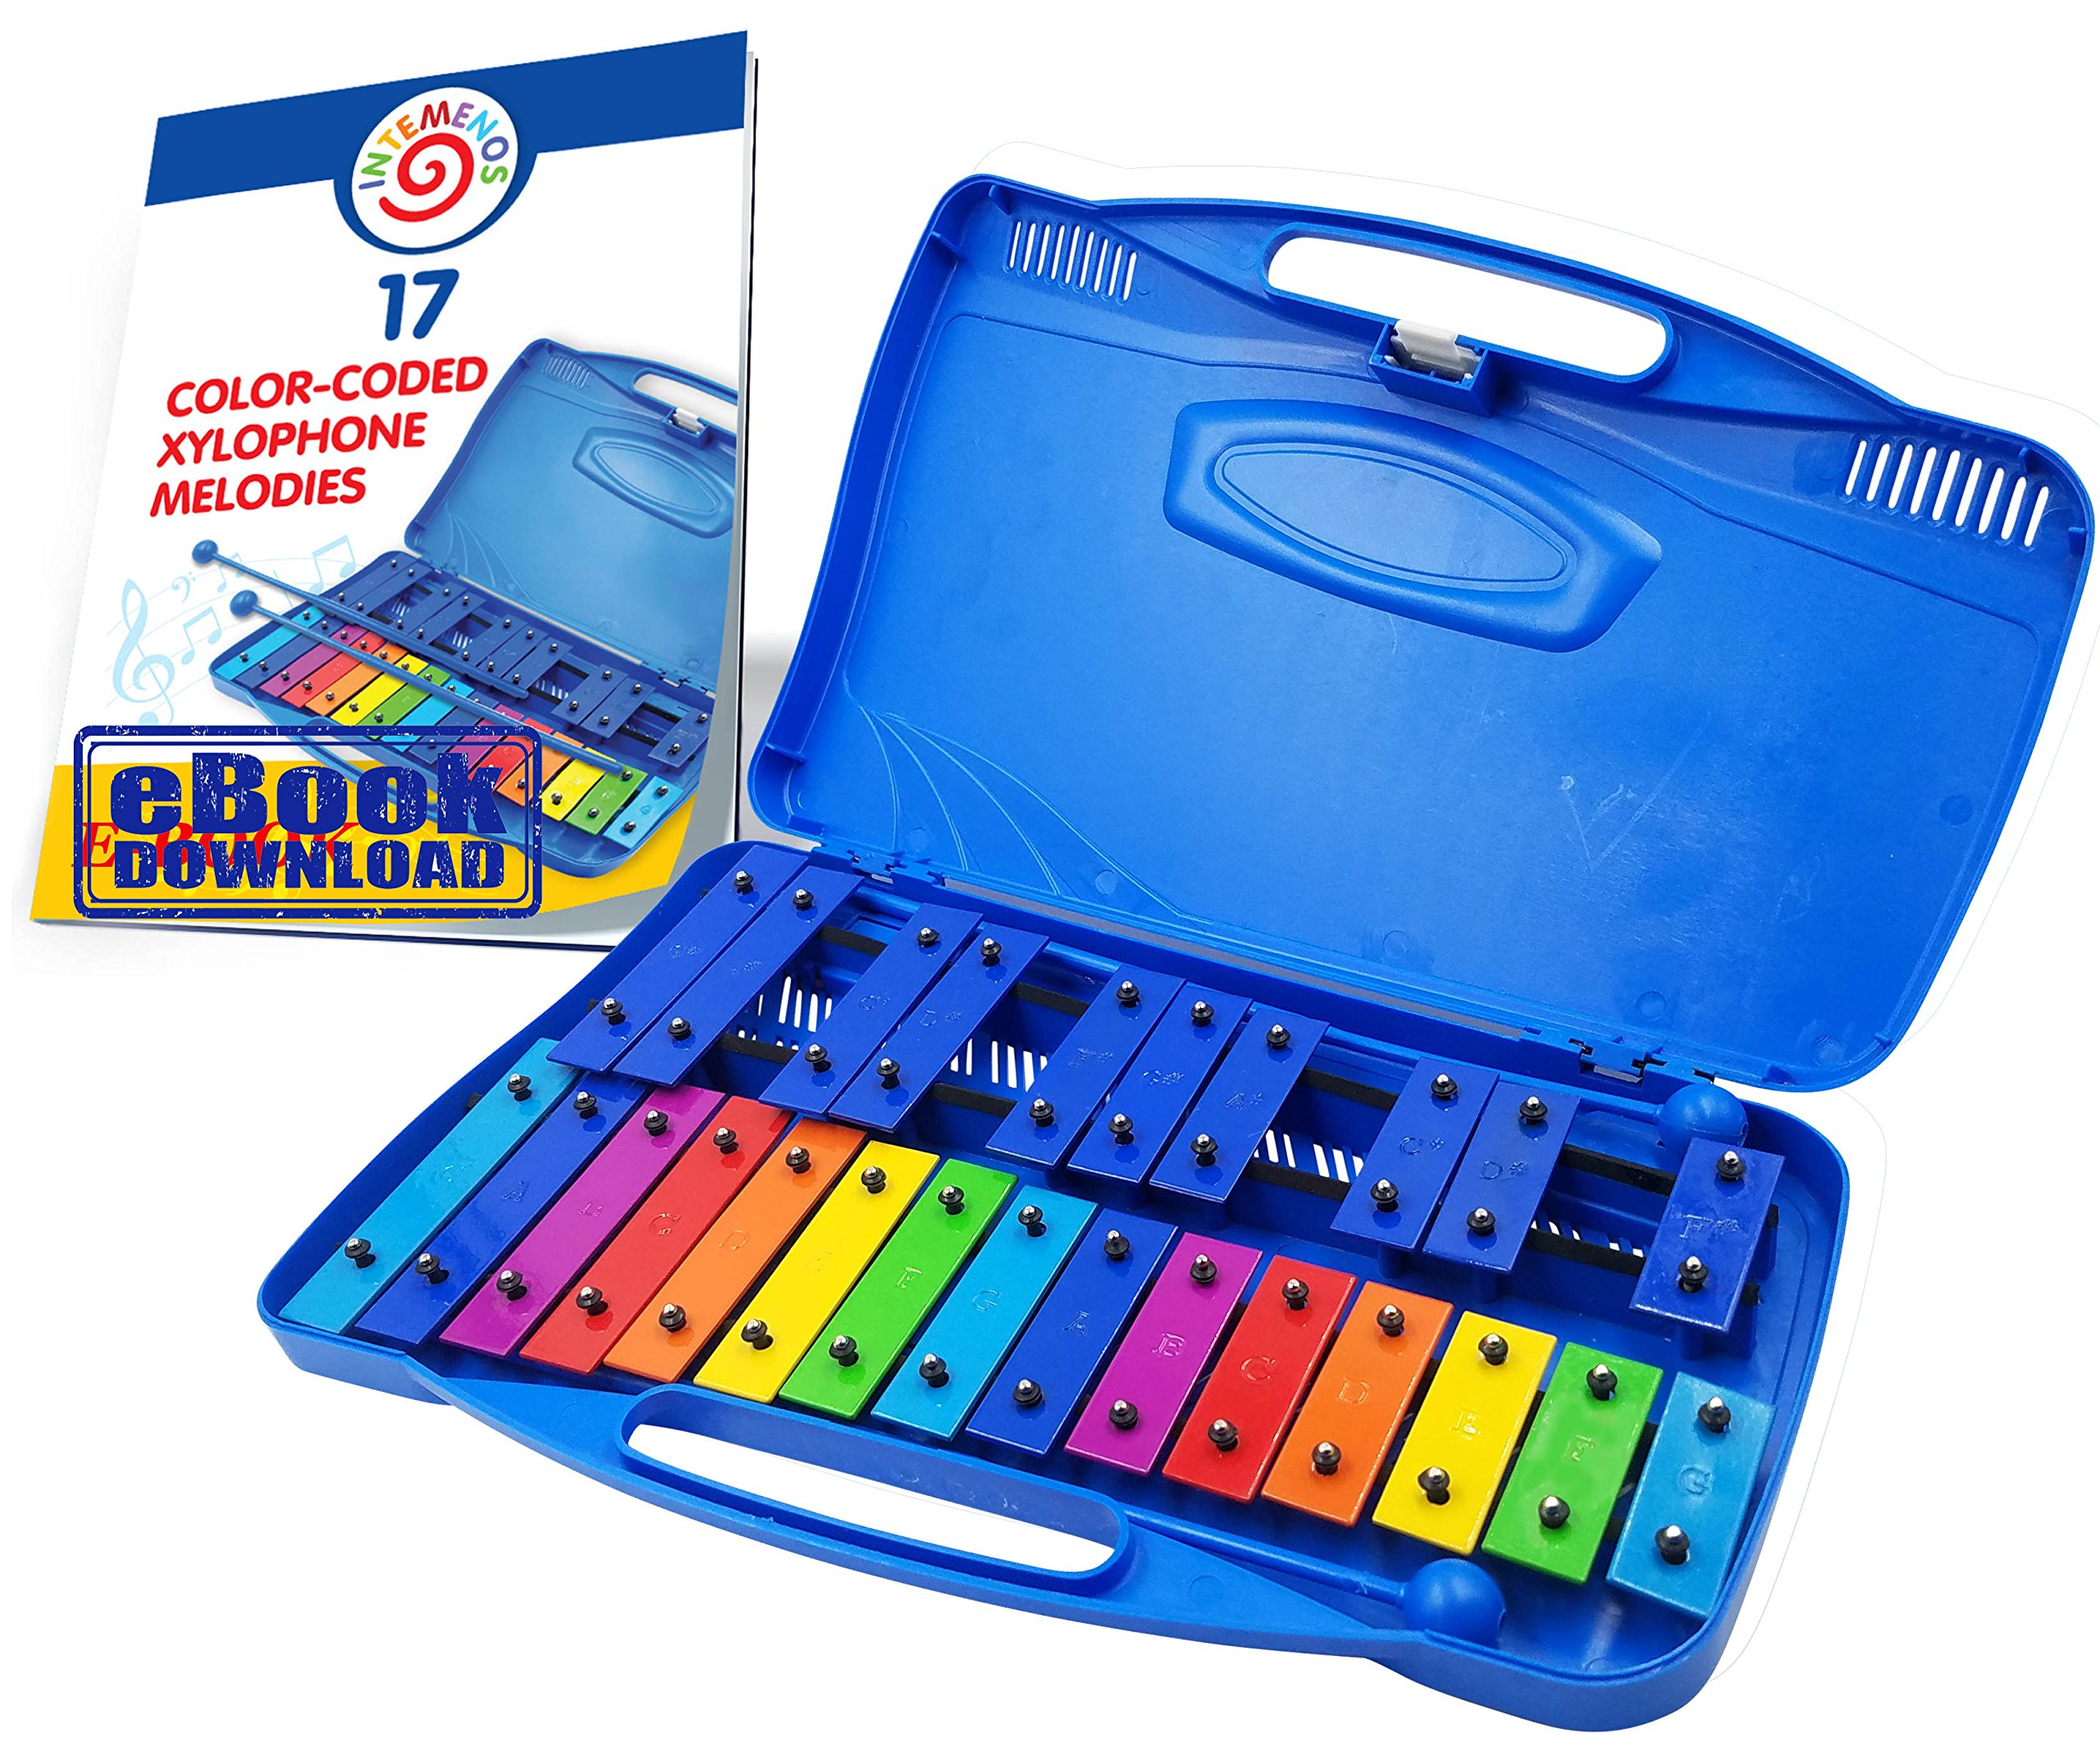 inTemenos Xylophone Glockenspiel 25 Note Chromatic Xylophone in a Plastic Case - 17 Color-Coded Song E-Book just for This Xylophone